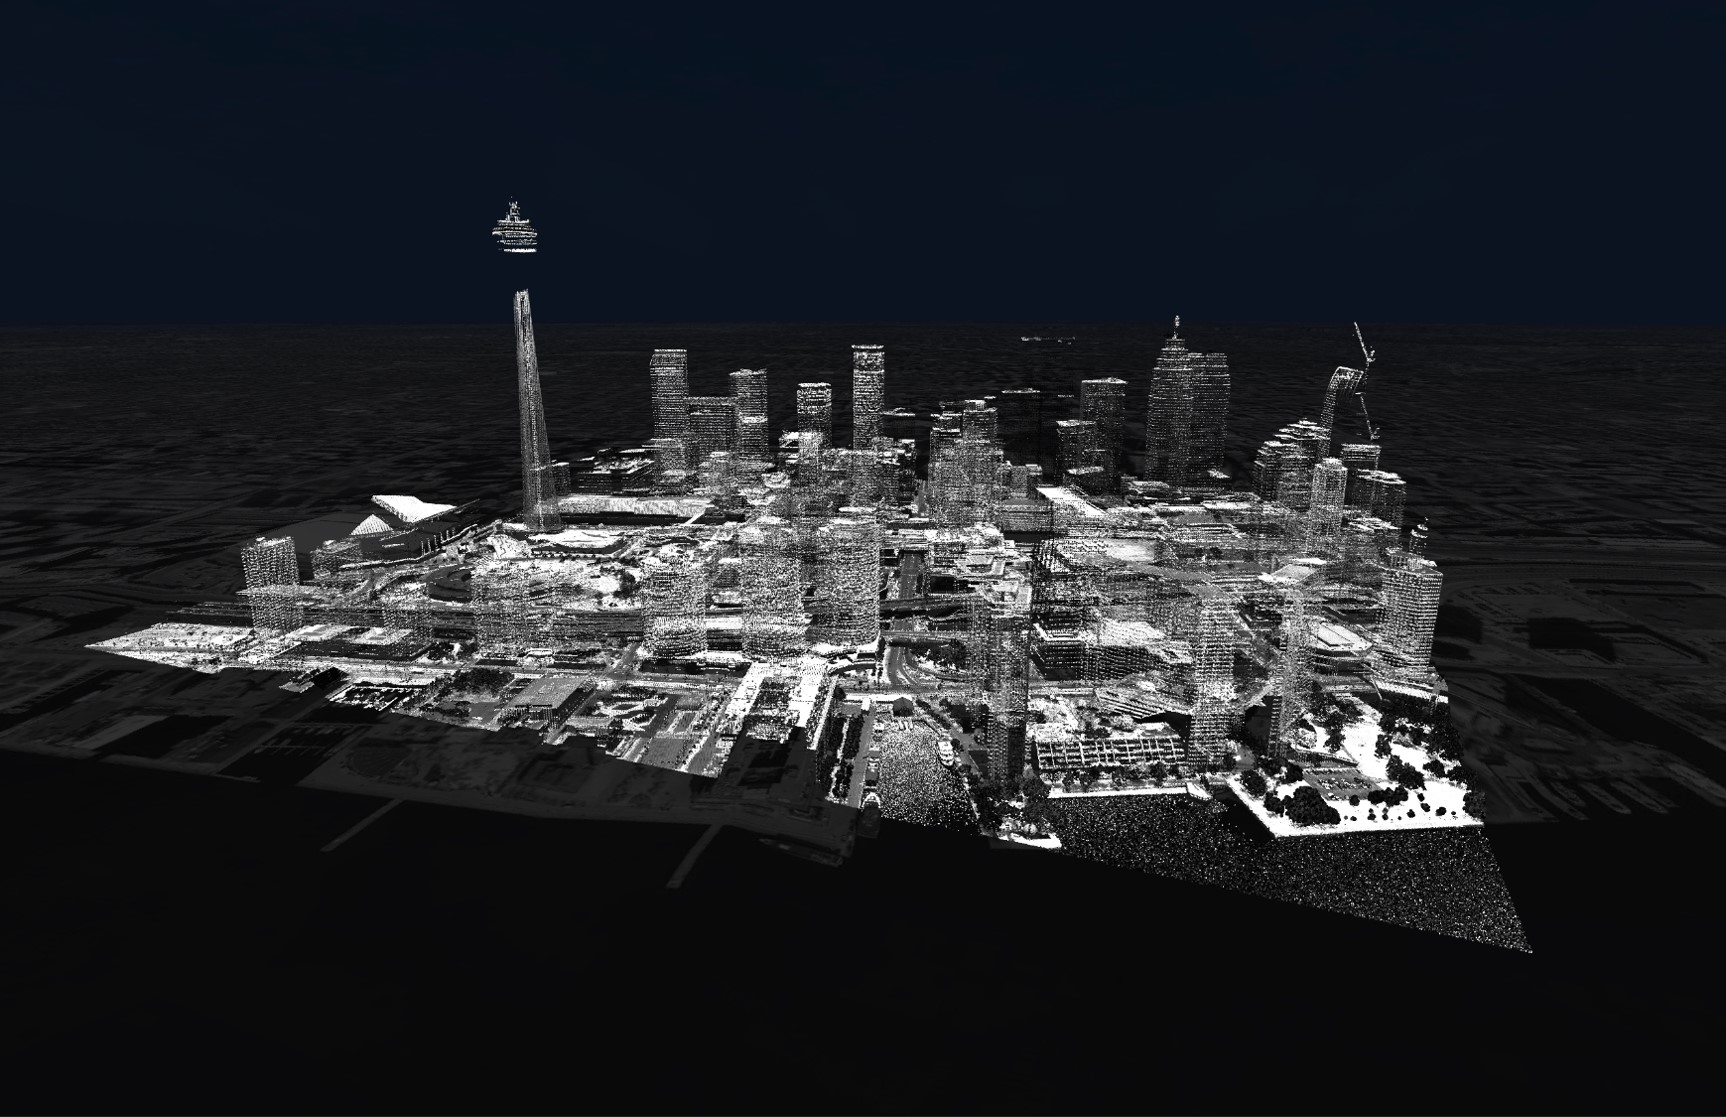 Toronto LiDAR black and white, showing the downtown core including CN tower and surrounding buildings